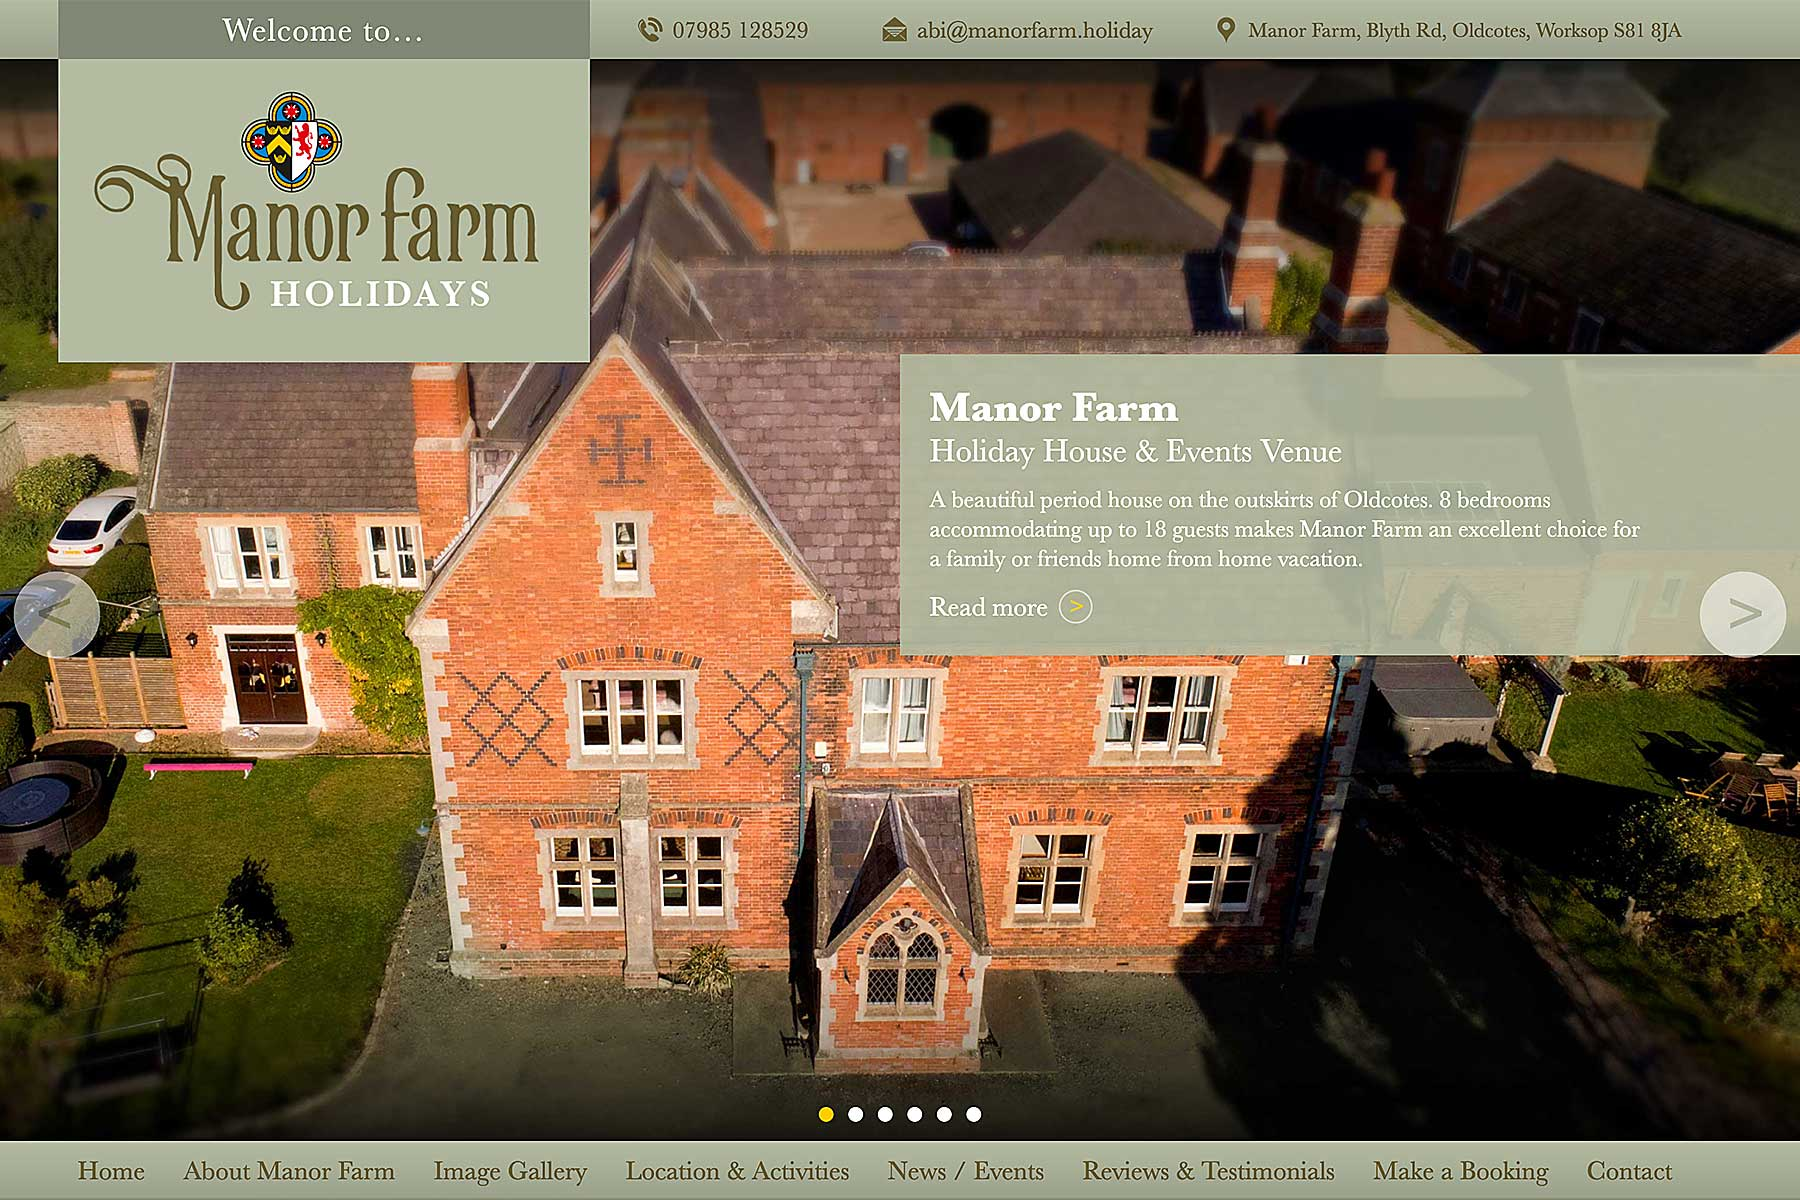 New website and corporate identity for Manor Farm